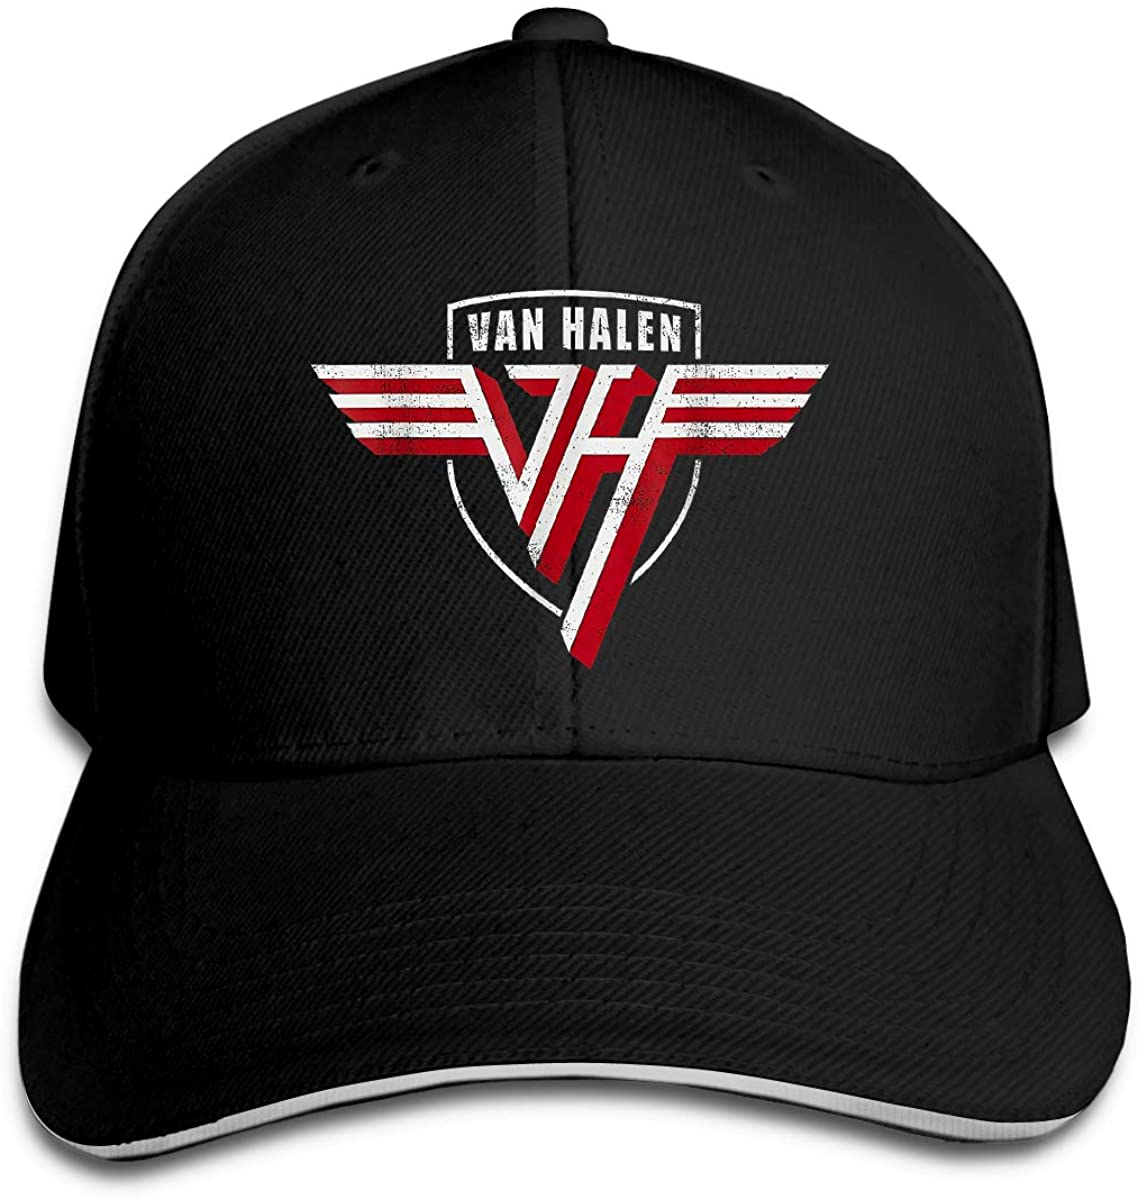 Van Halen Hip Hop Baseball Cap Golf Trucker Baseball Cap Adjustable Peaked Sandwich Hat Black Unisex Casquette Black